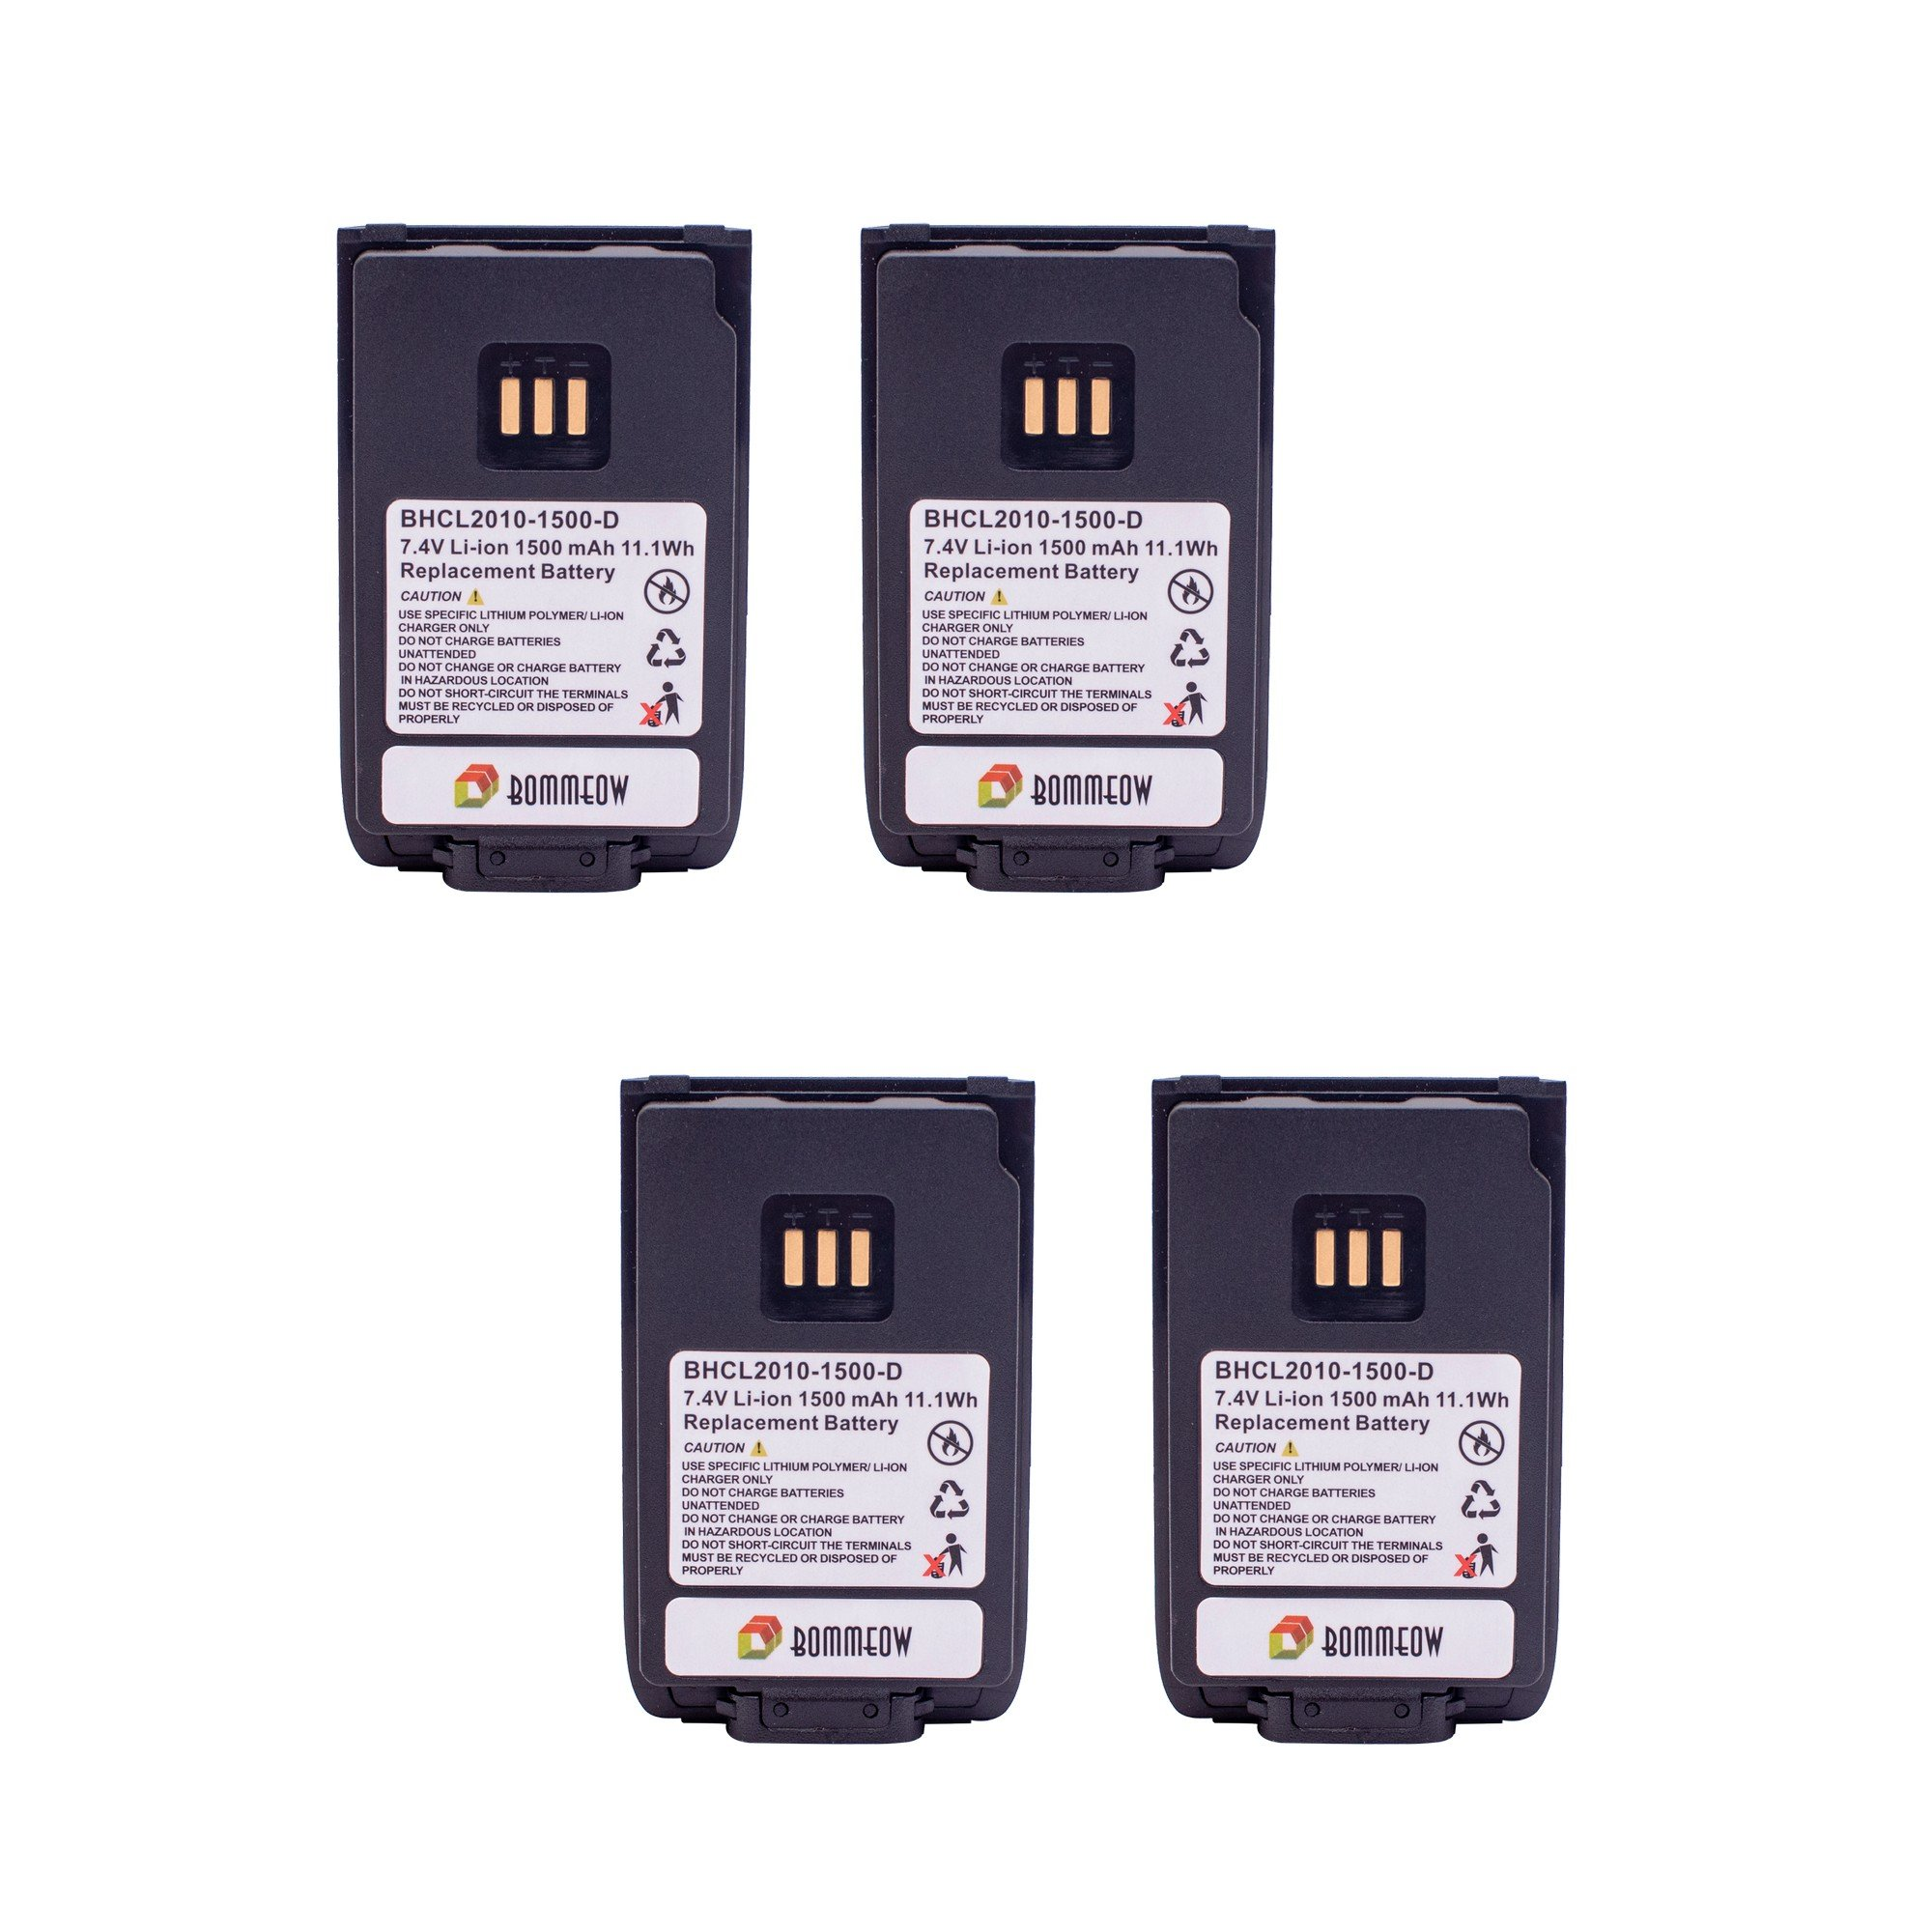 4 Pack Bommeow BHCL2010-1500-D Replacement Battery for Hytera PD502 PD-562 PD-682 PD-606 PD412 PD-662